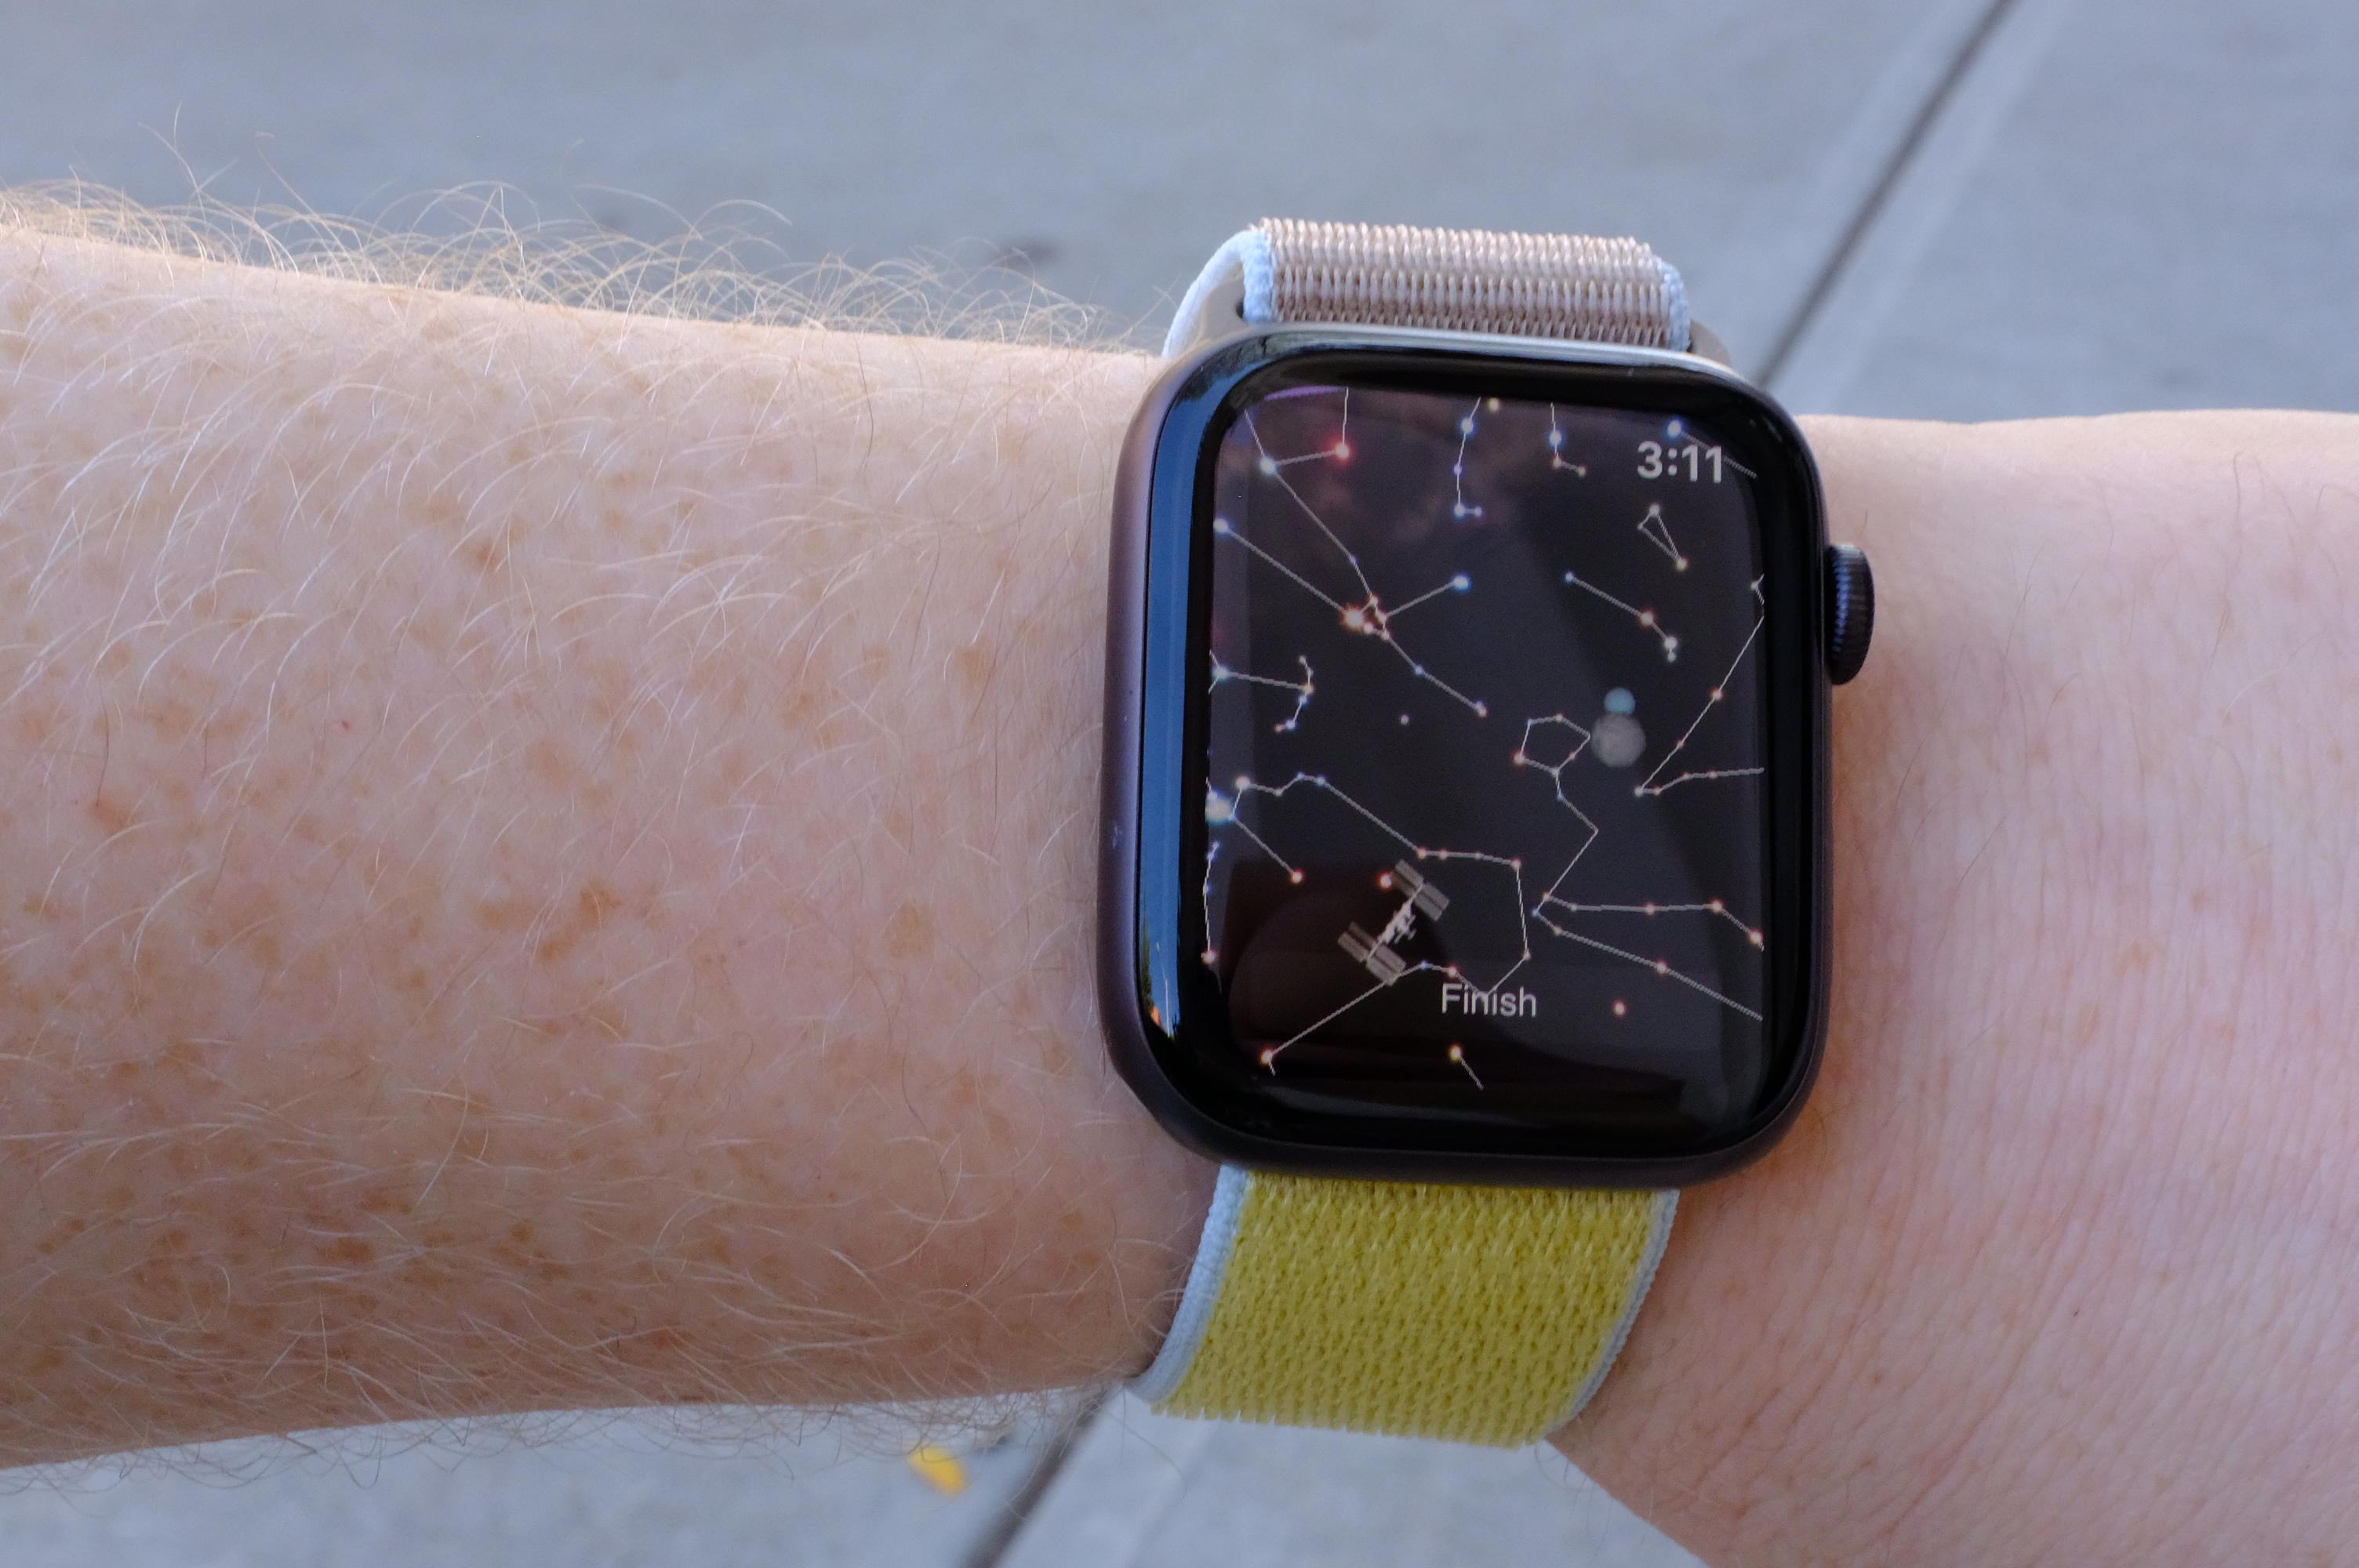 DSCF7812 - Apple Watch Series 5 review